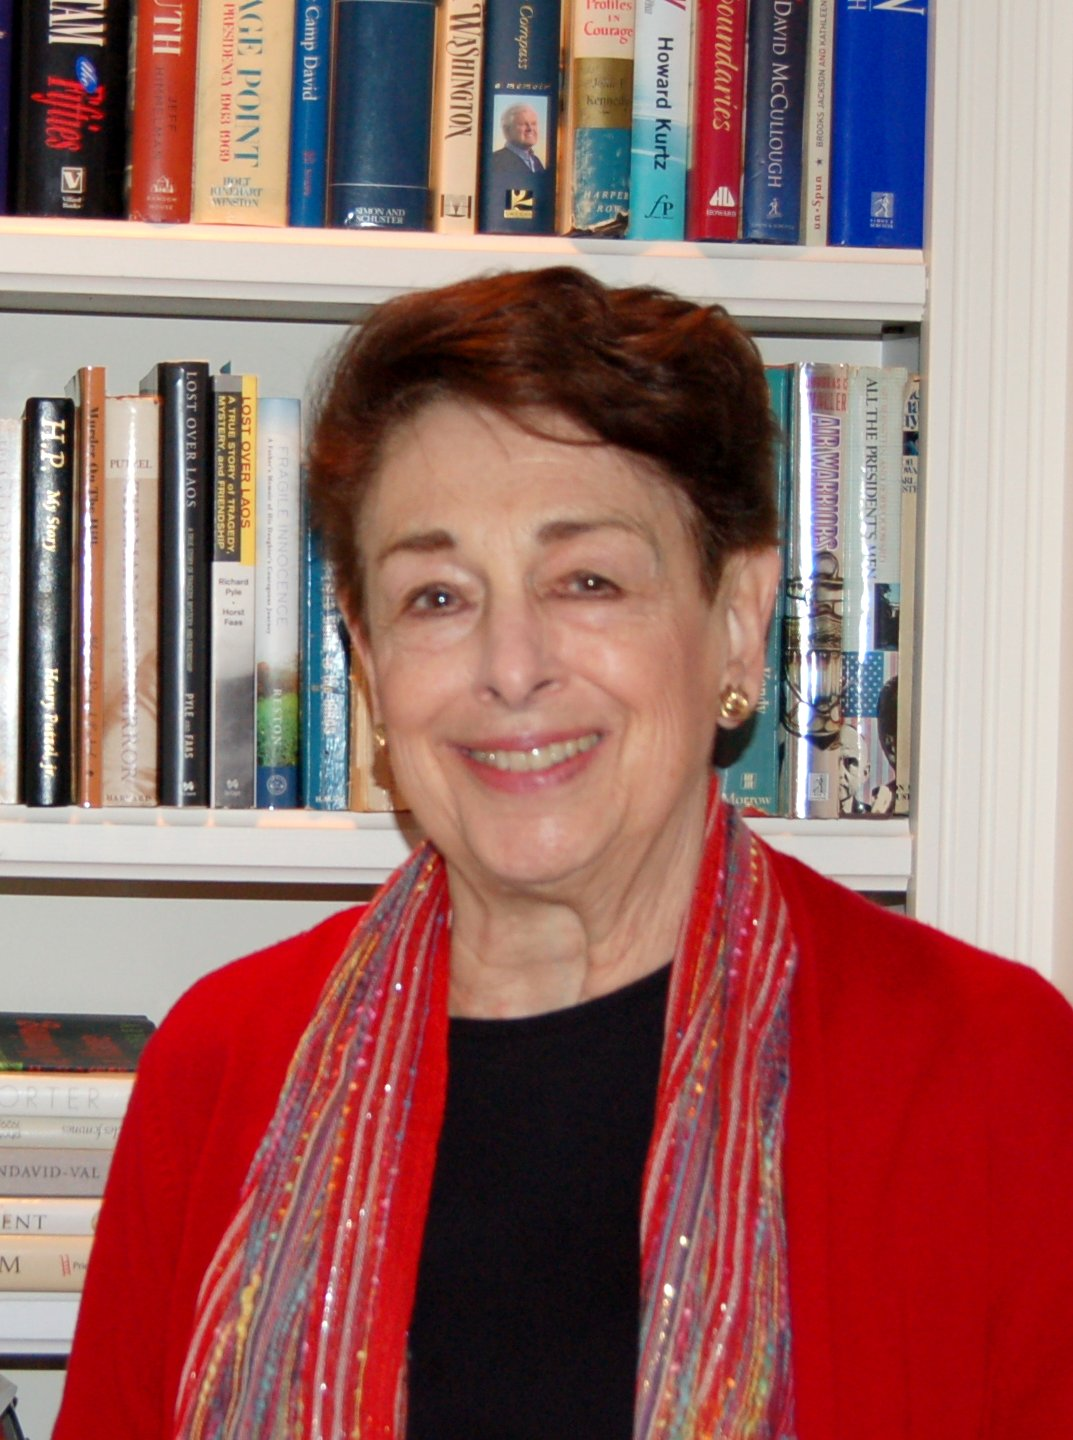 Marian Burros, 2017 recipient of the Carol DeMasters Award for service to food journalism